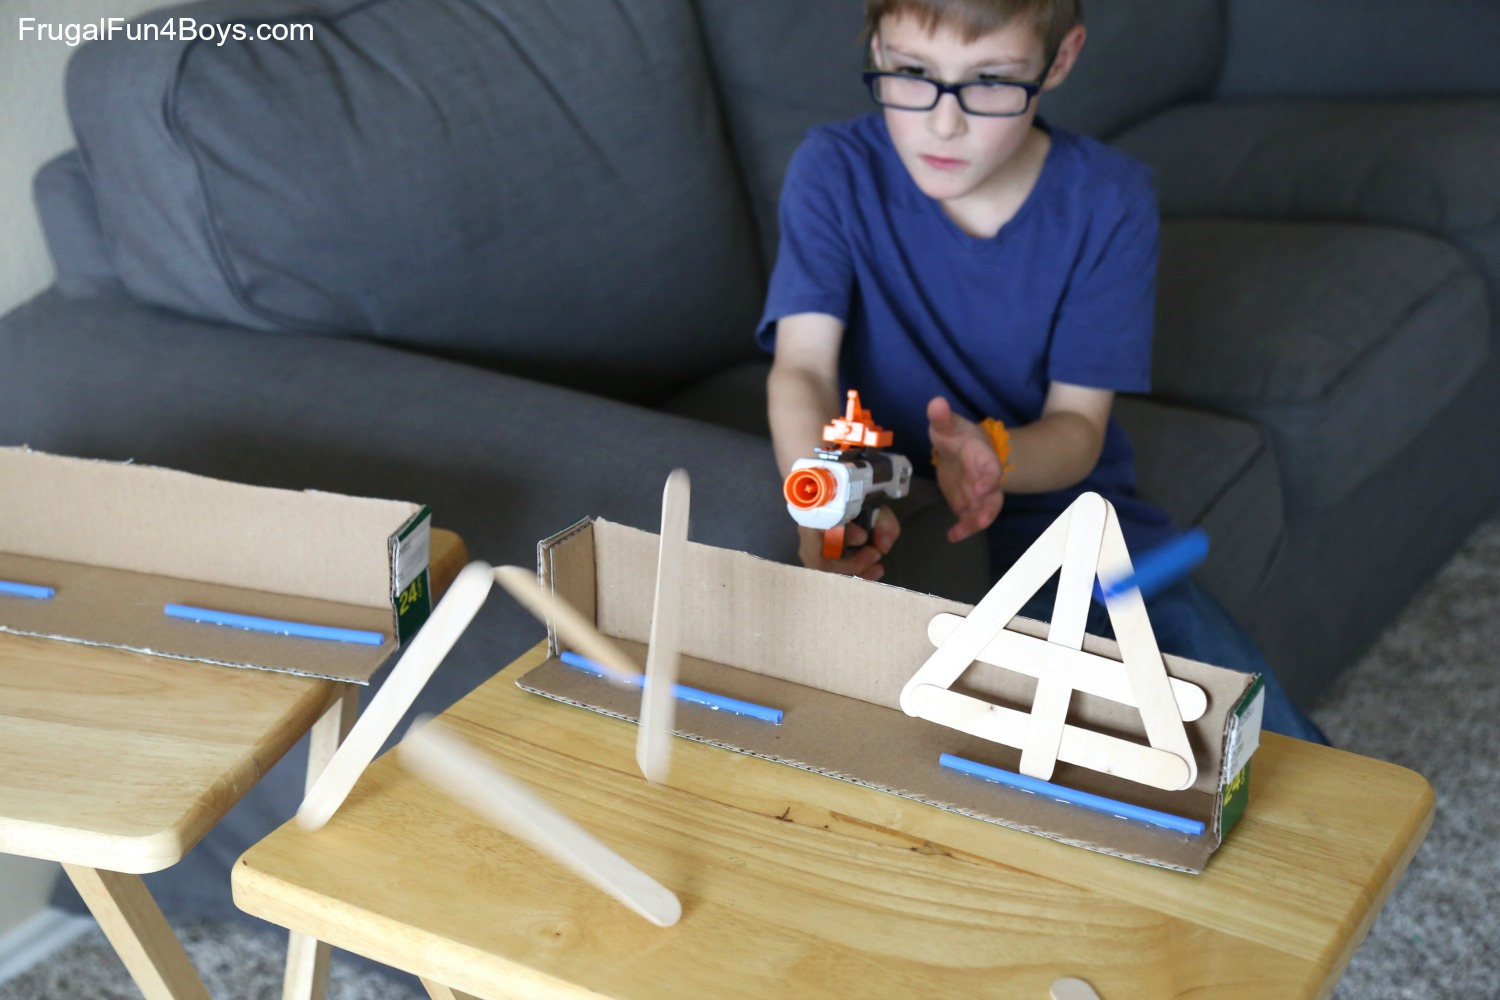 Super Awesome Nerf Games to Make